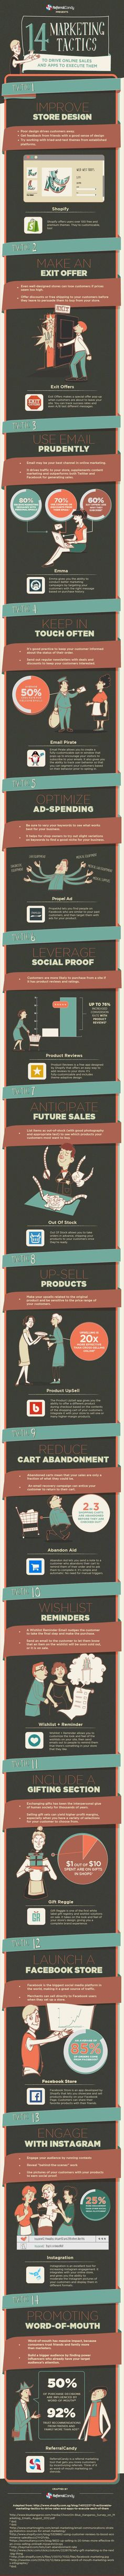 14 Marketing Tactics to Drive Online Sales [Infographic]: Are you using the right marketing tactics to drive online sales for your business? This infographic provides you with he information you need. Small Business Marketing, Marketing And Advertising, Internet Marketing, Online Marketing, Social Media Marketing, Online Business, Content Marketing, Marketing Articles, Marketing Ideas